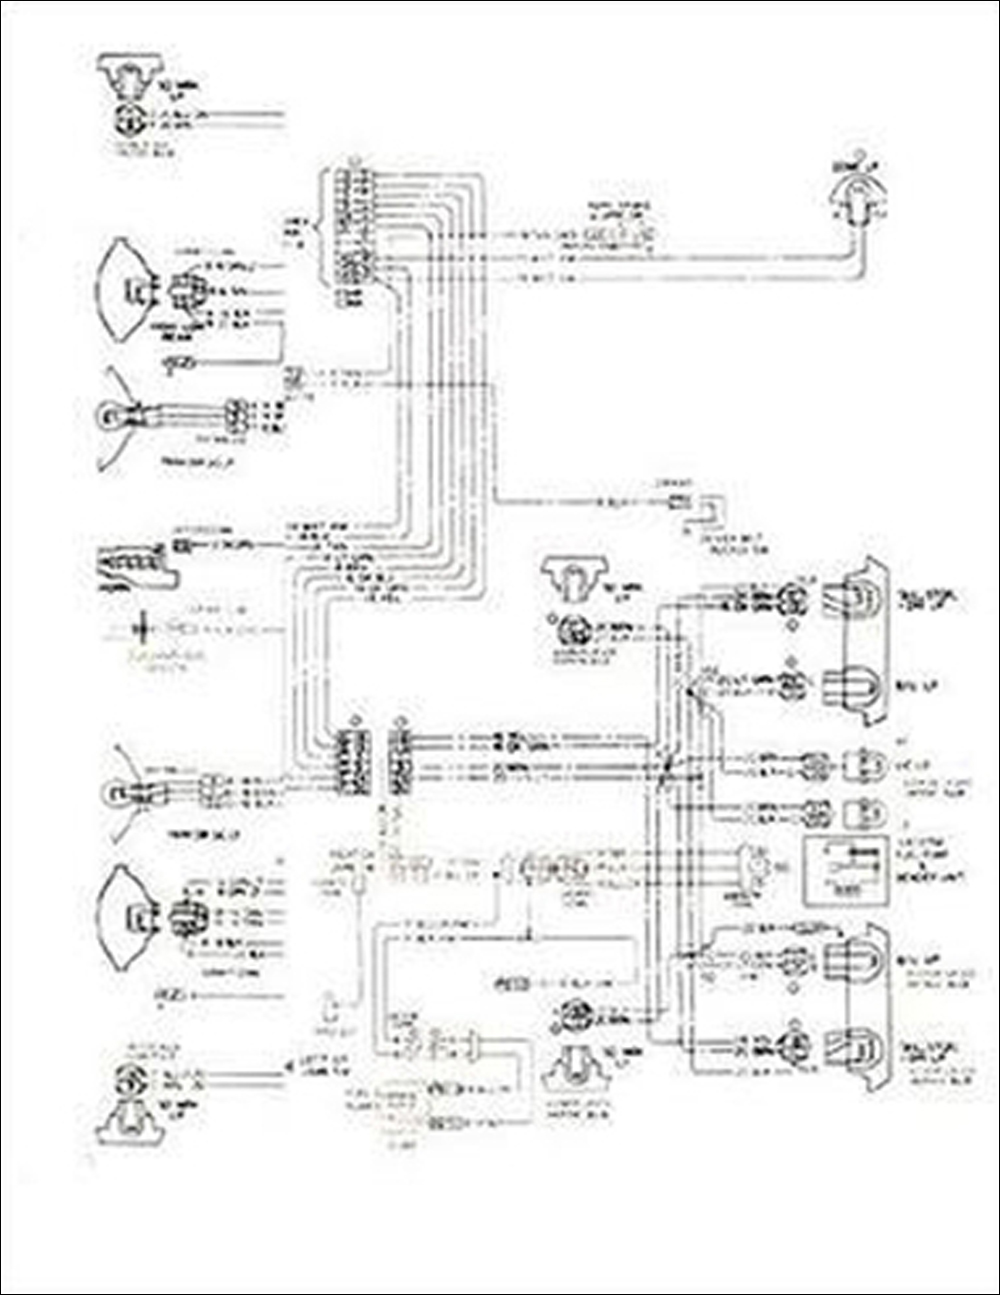 1977 Camaro Wiring Diagram Change Your Idea With 1967 Distributor Foldout Original Lt Rs And Z28 Rh Faxonautoliterature Com 1976 67